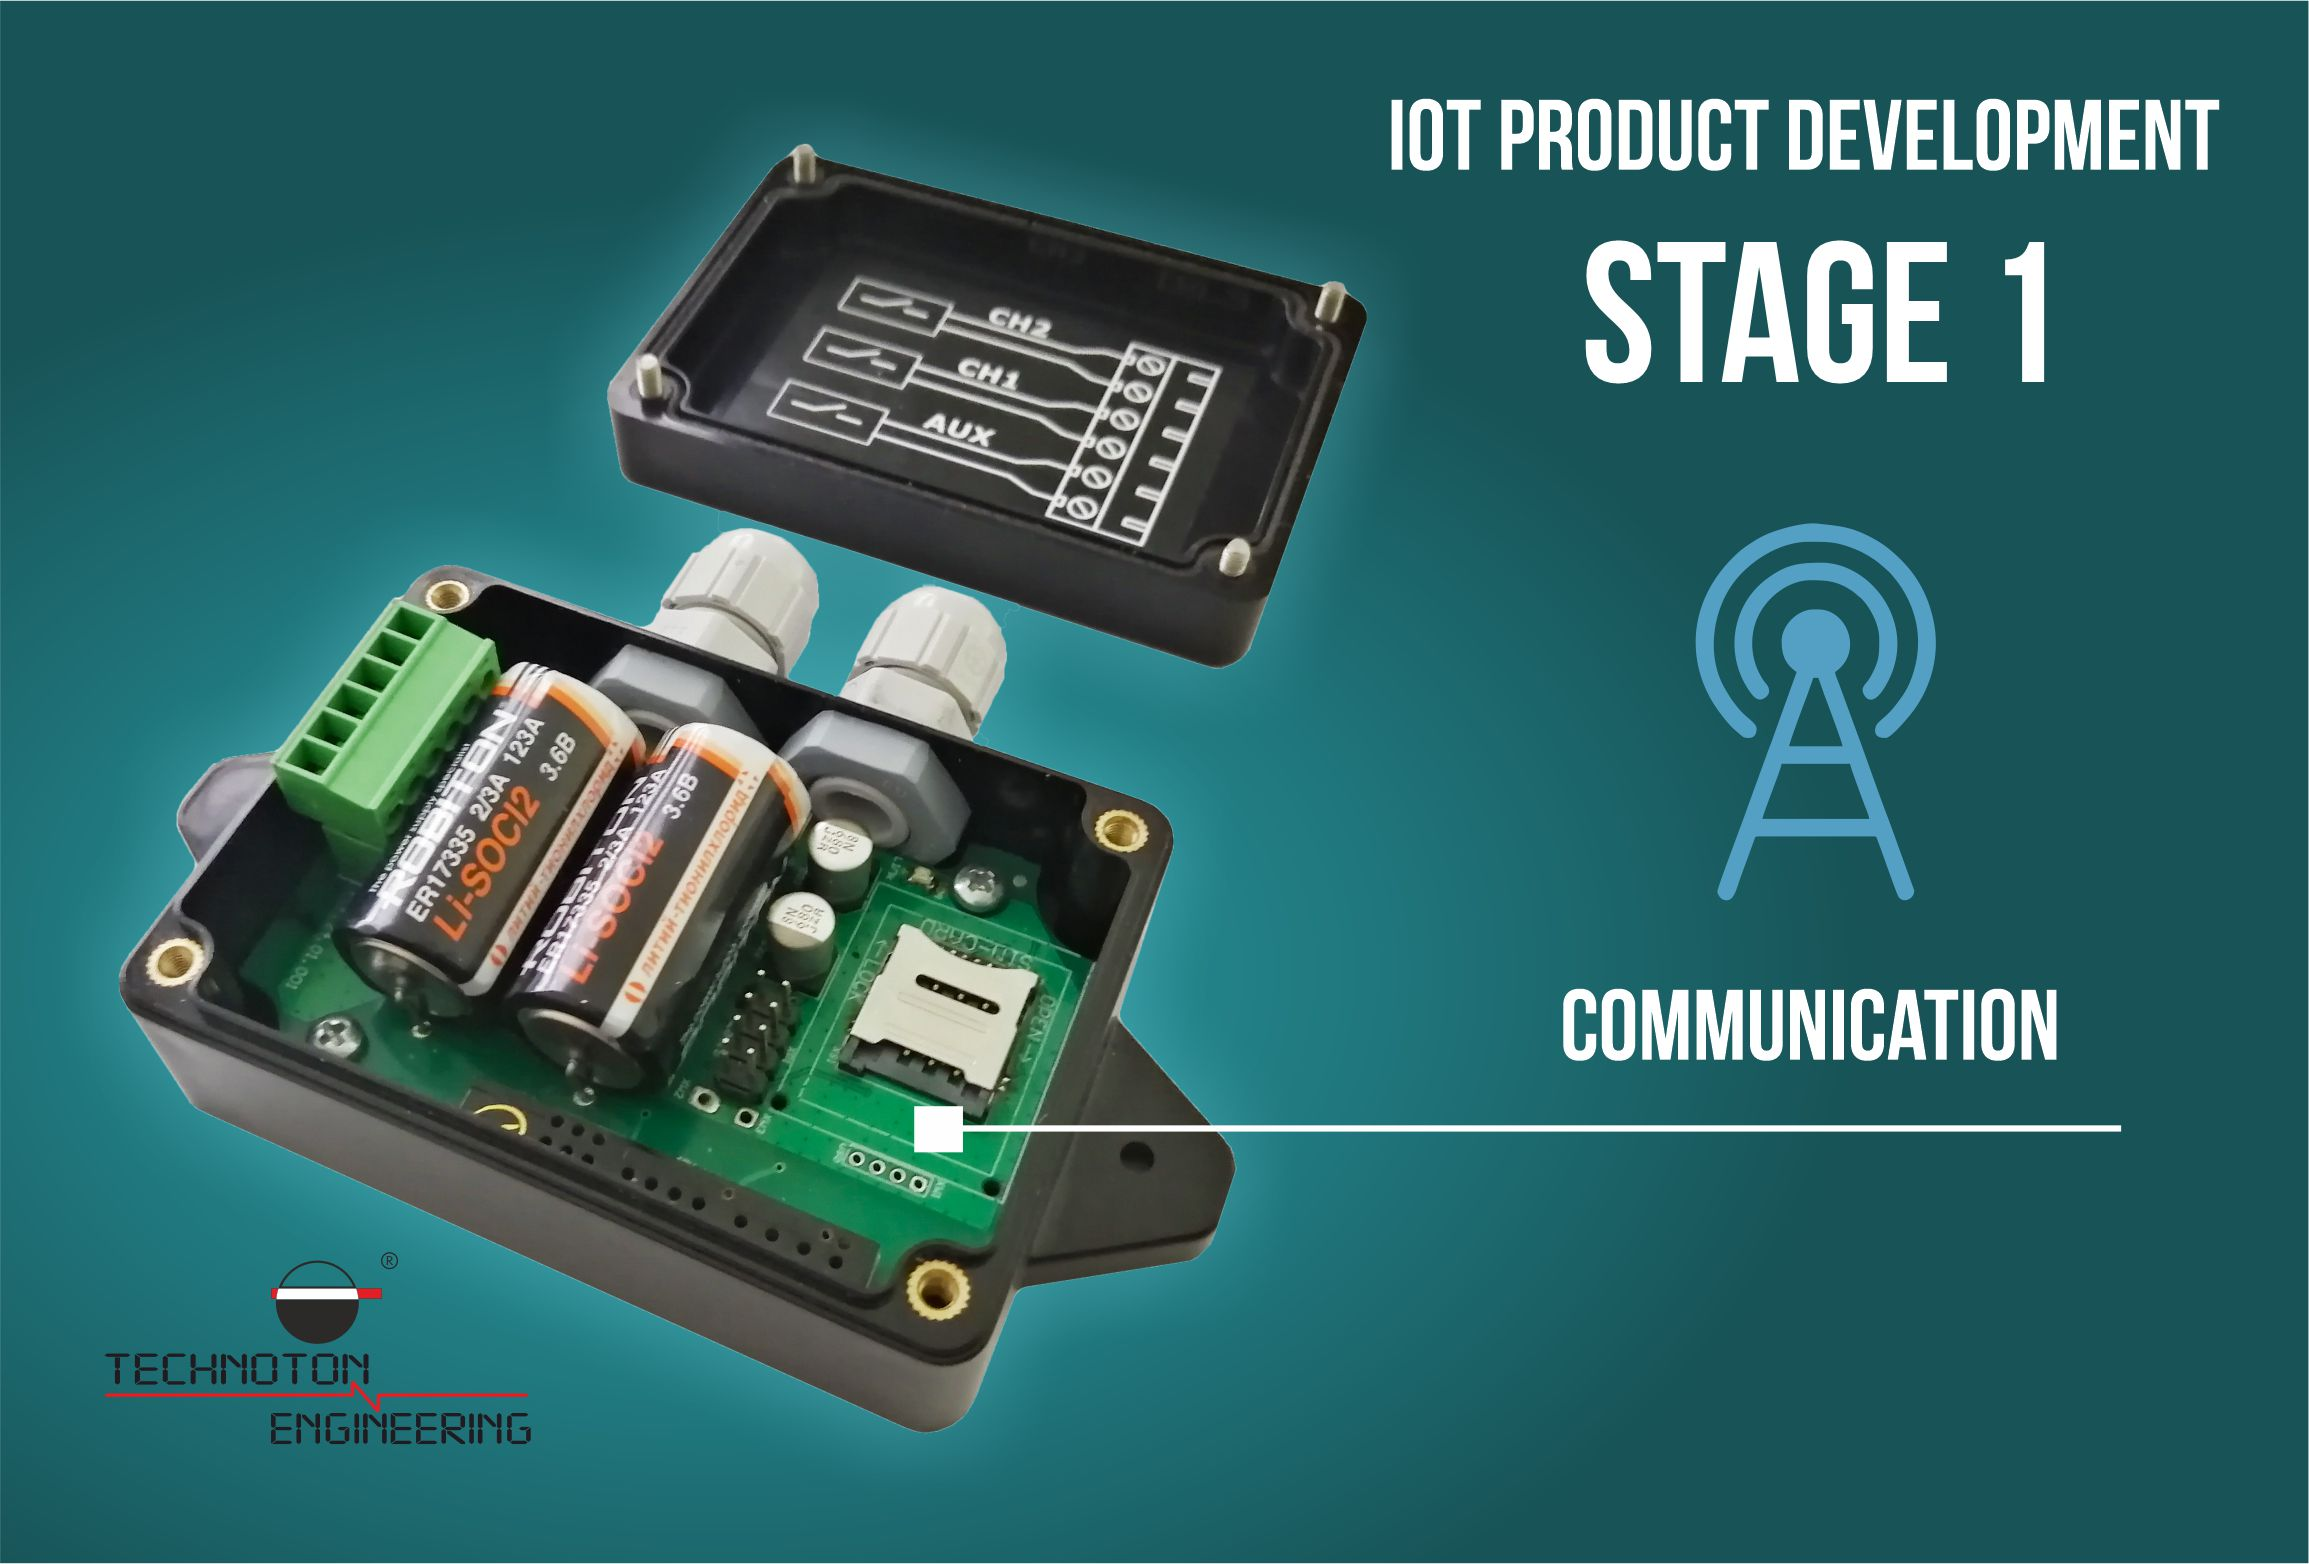 Communication stage for IoT product